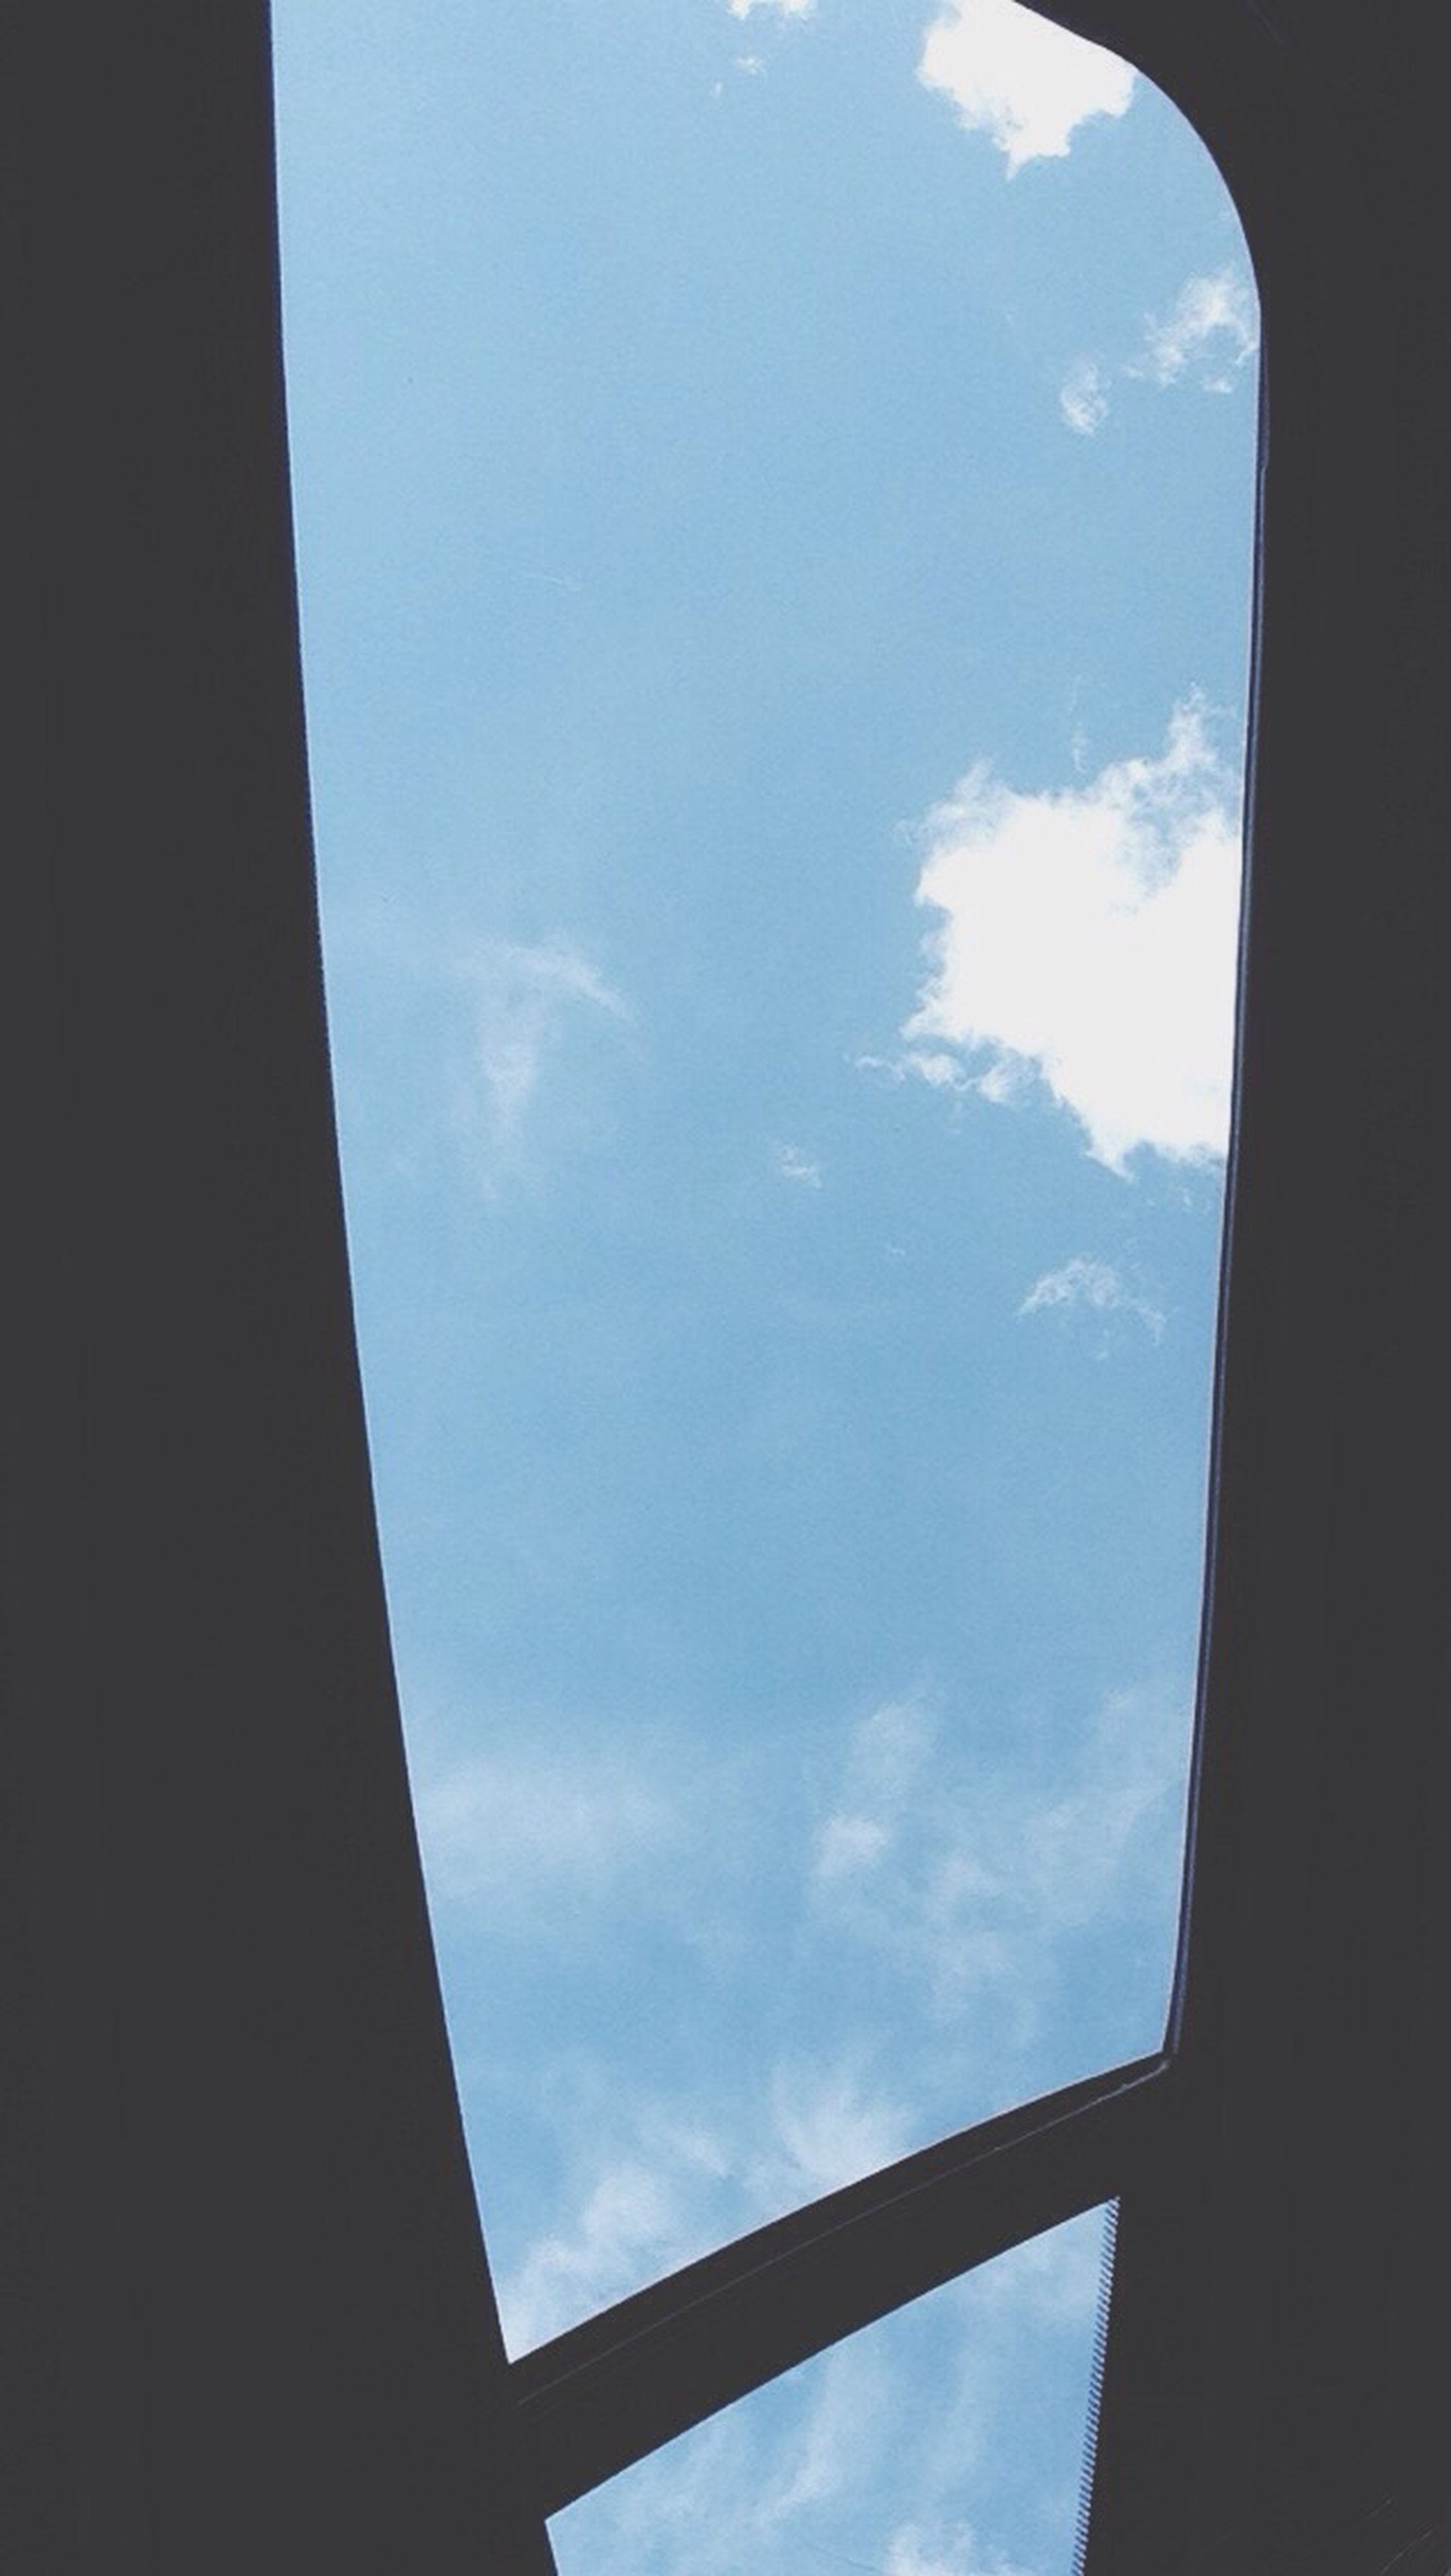 sky, low angle view, window, cloud - sky, cloud, indoors, glass - material, built structure, transparent, blue, cloudy, day, architecture, no people, sunlight, nature, part of, directly below, silhouette